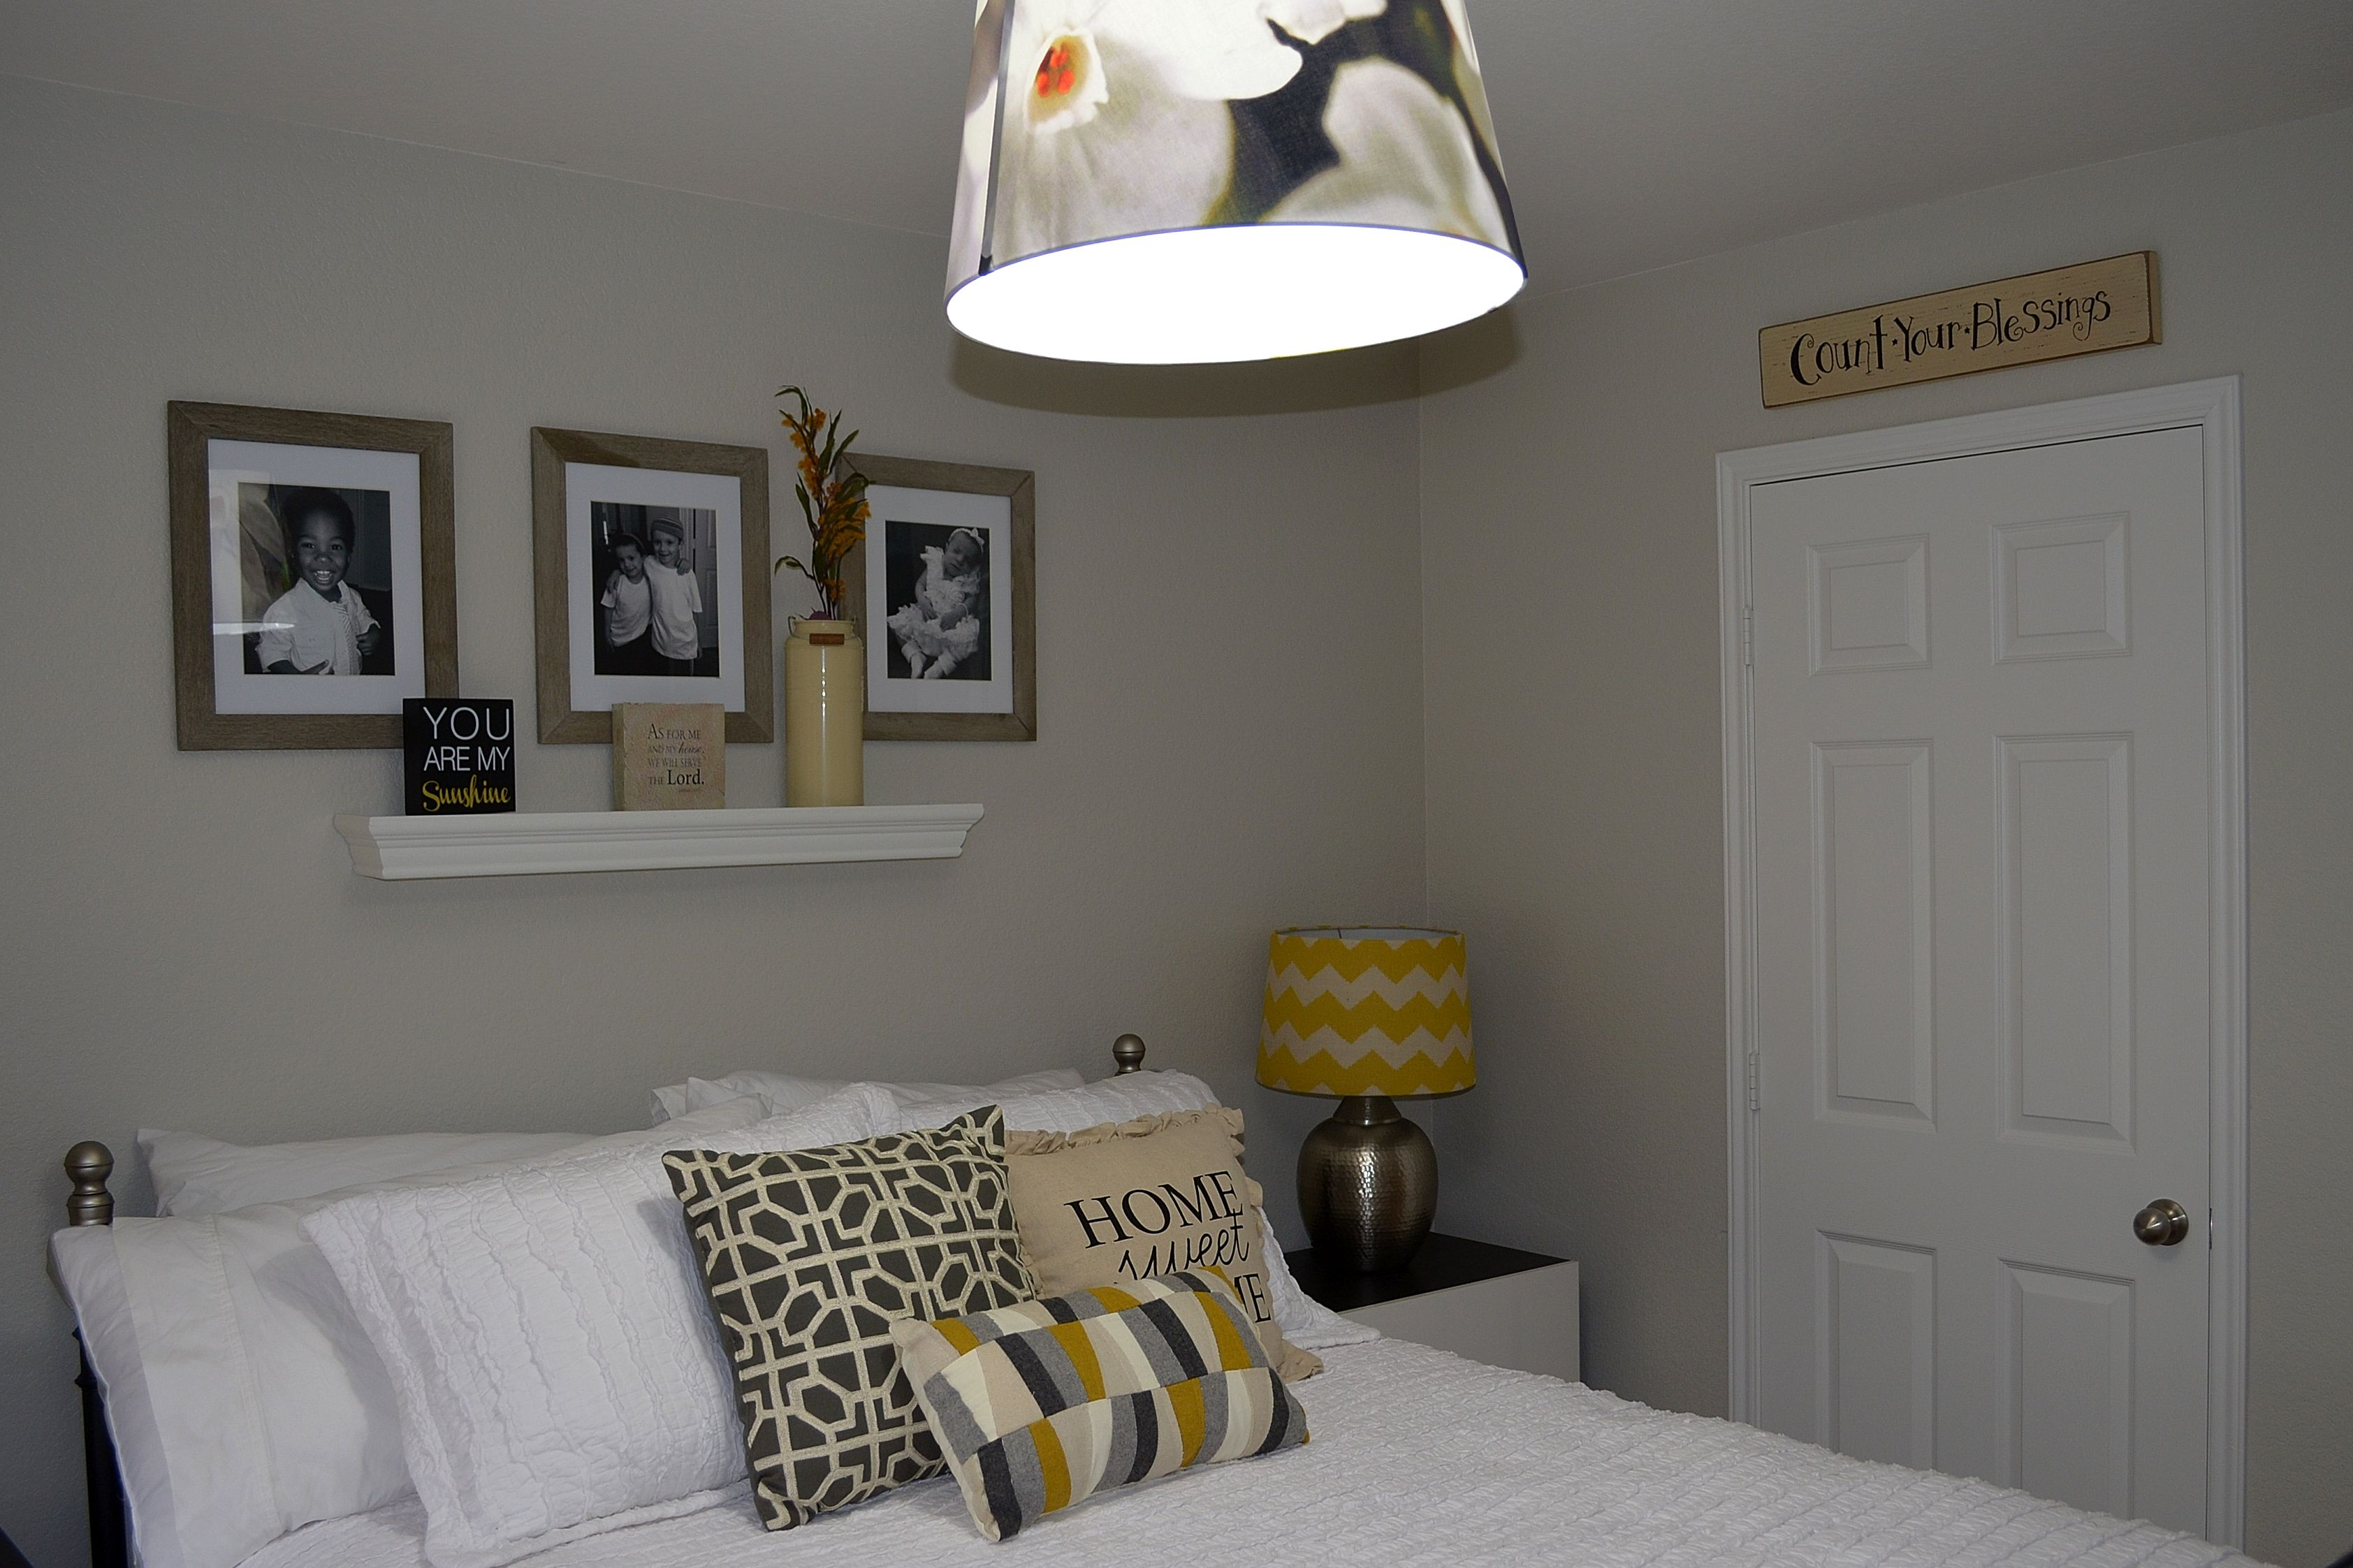 Guest Room Design & Decor Reveal - Life, Lemons & Lemonade